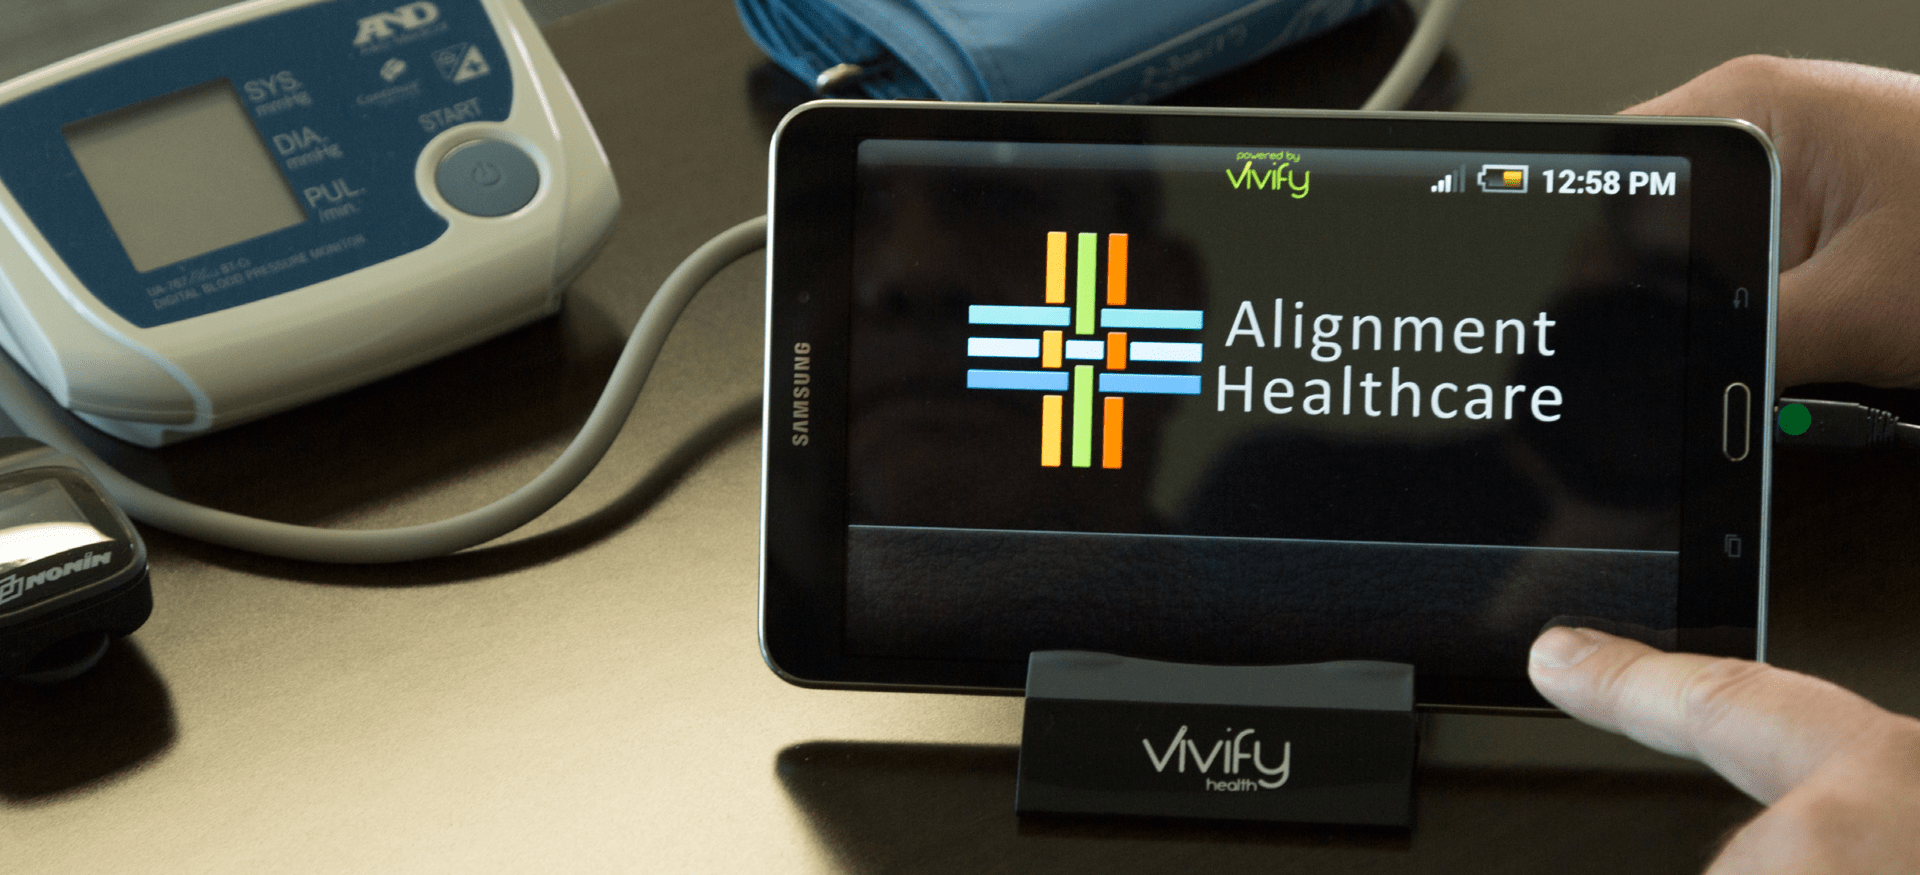 Remote Health Monitoring Powered by Vivify and Samsung Saves Lives and Money